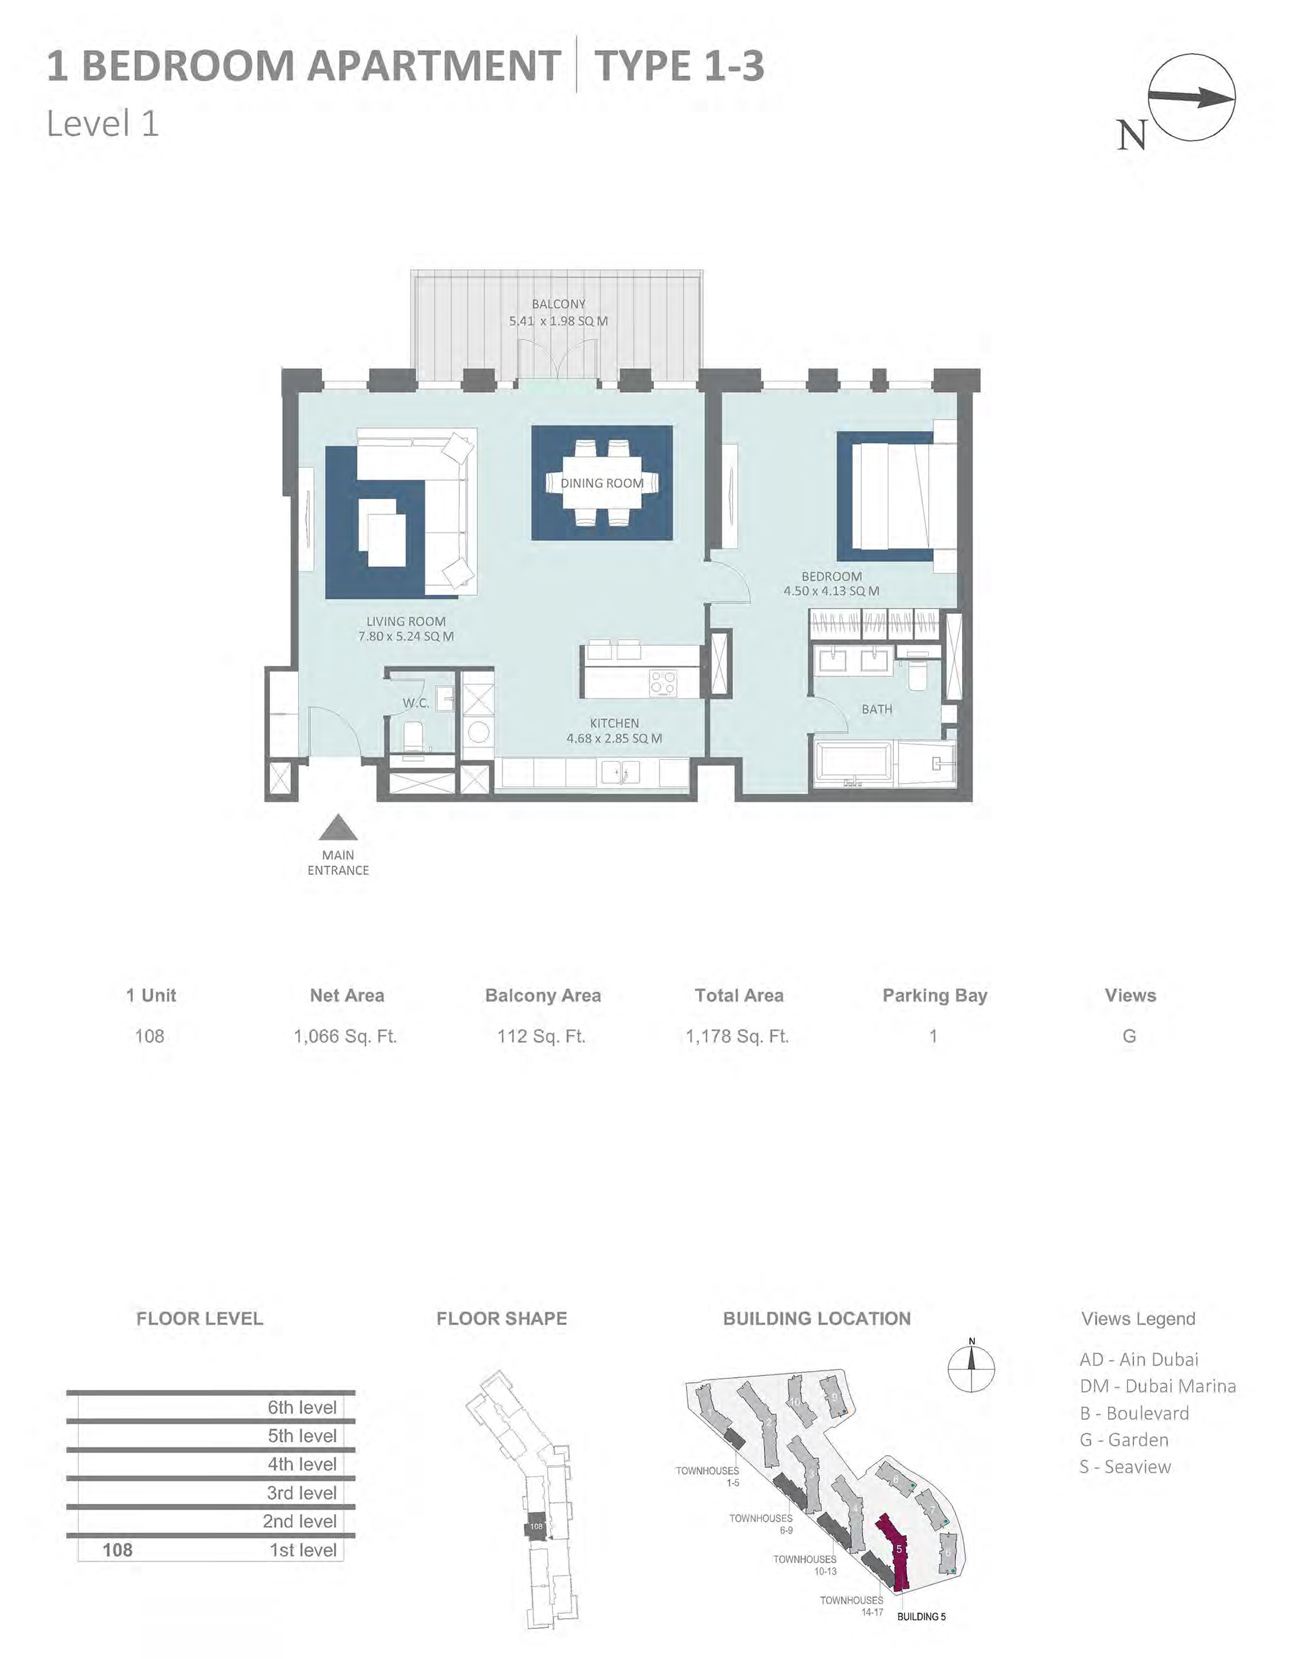 Building 5 - 1 Bedroom Type 1 - 3 Level 1 , Size 1066    sq. ft.